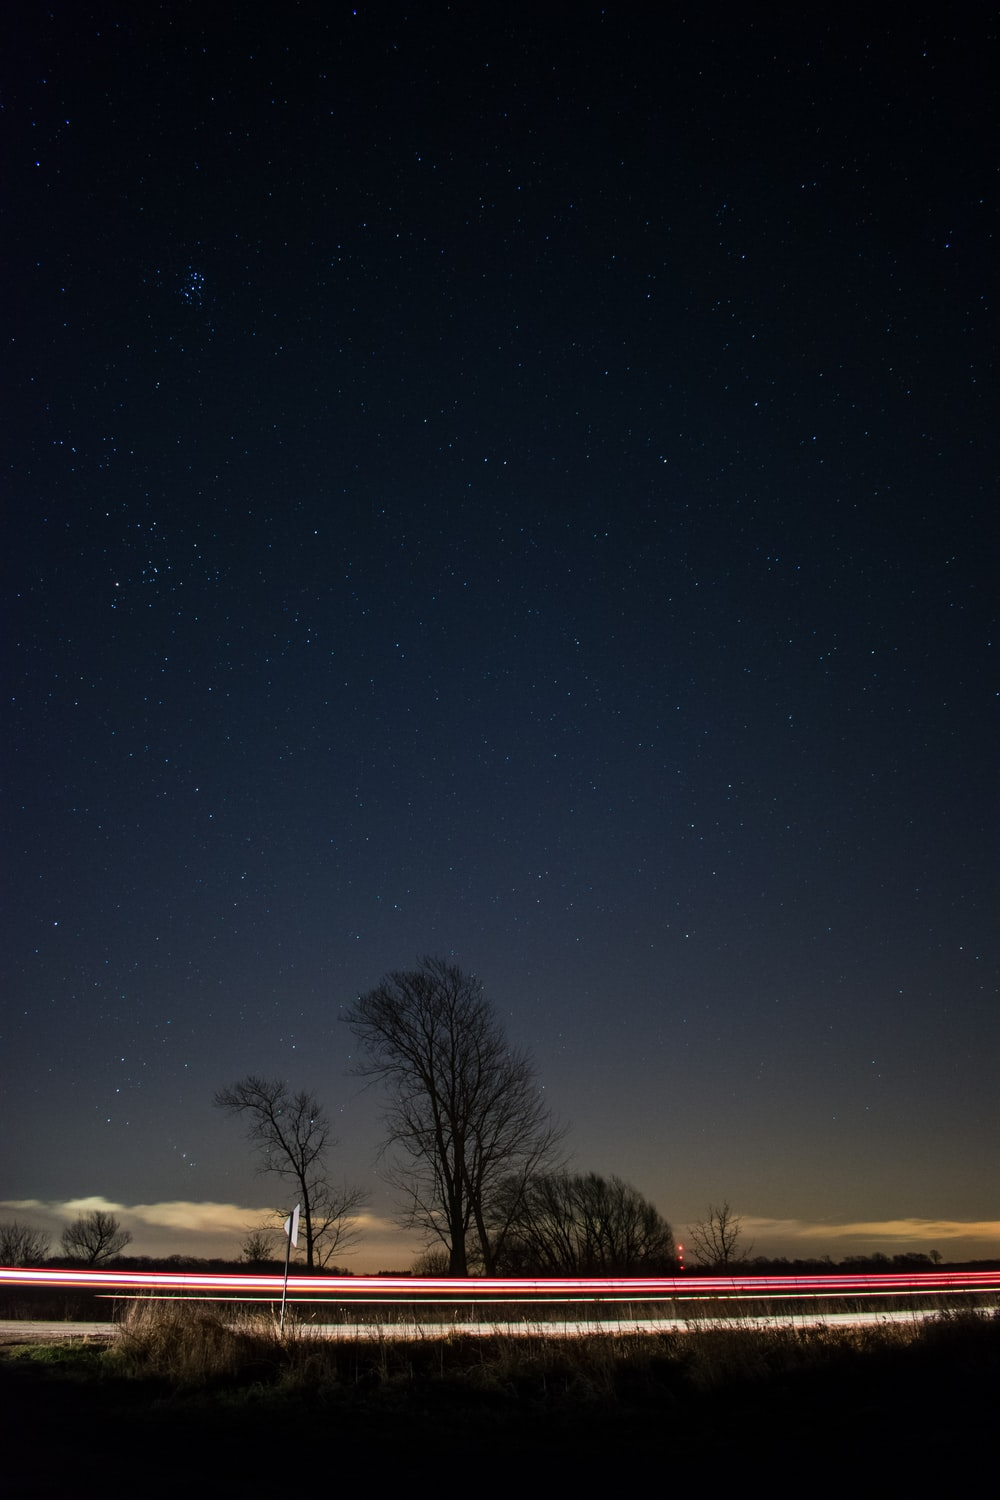 time lapse photography of vehicle crossing between bare trees under starry night